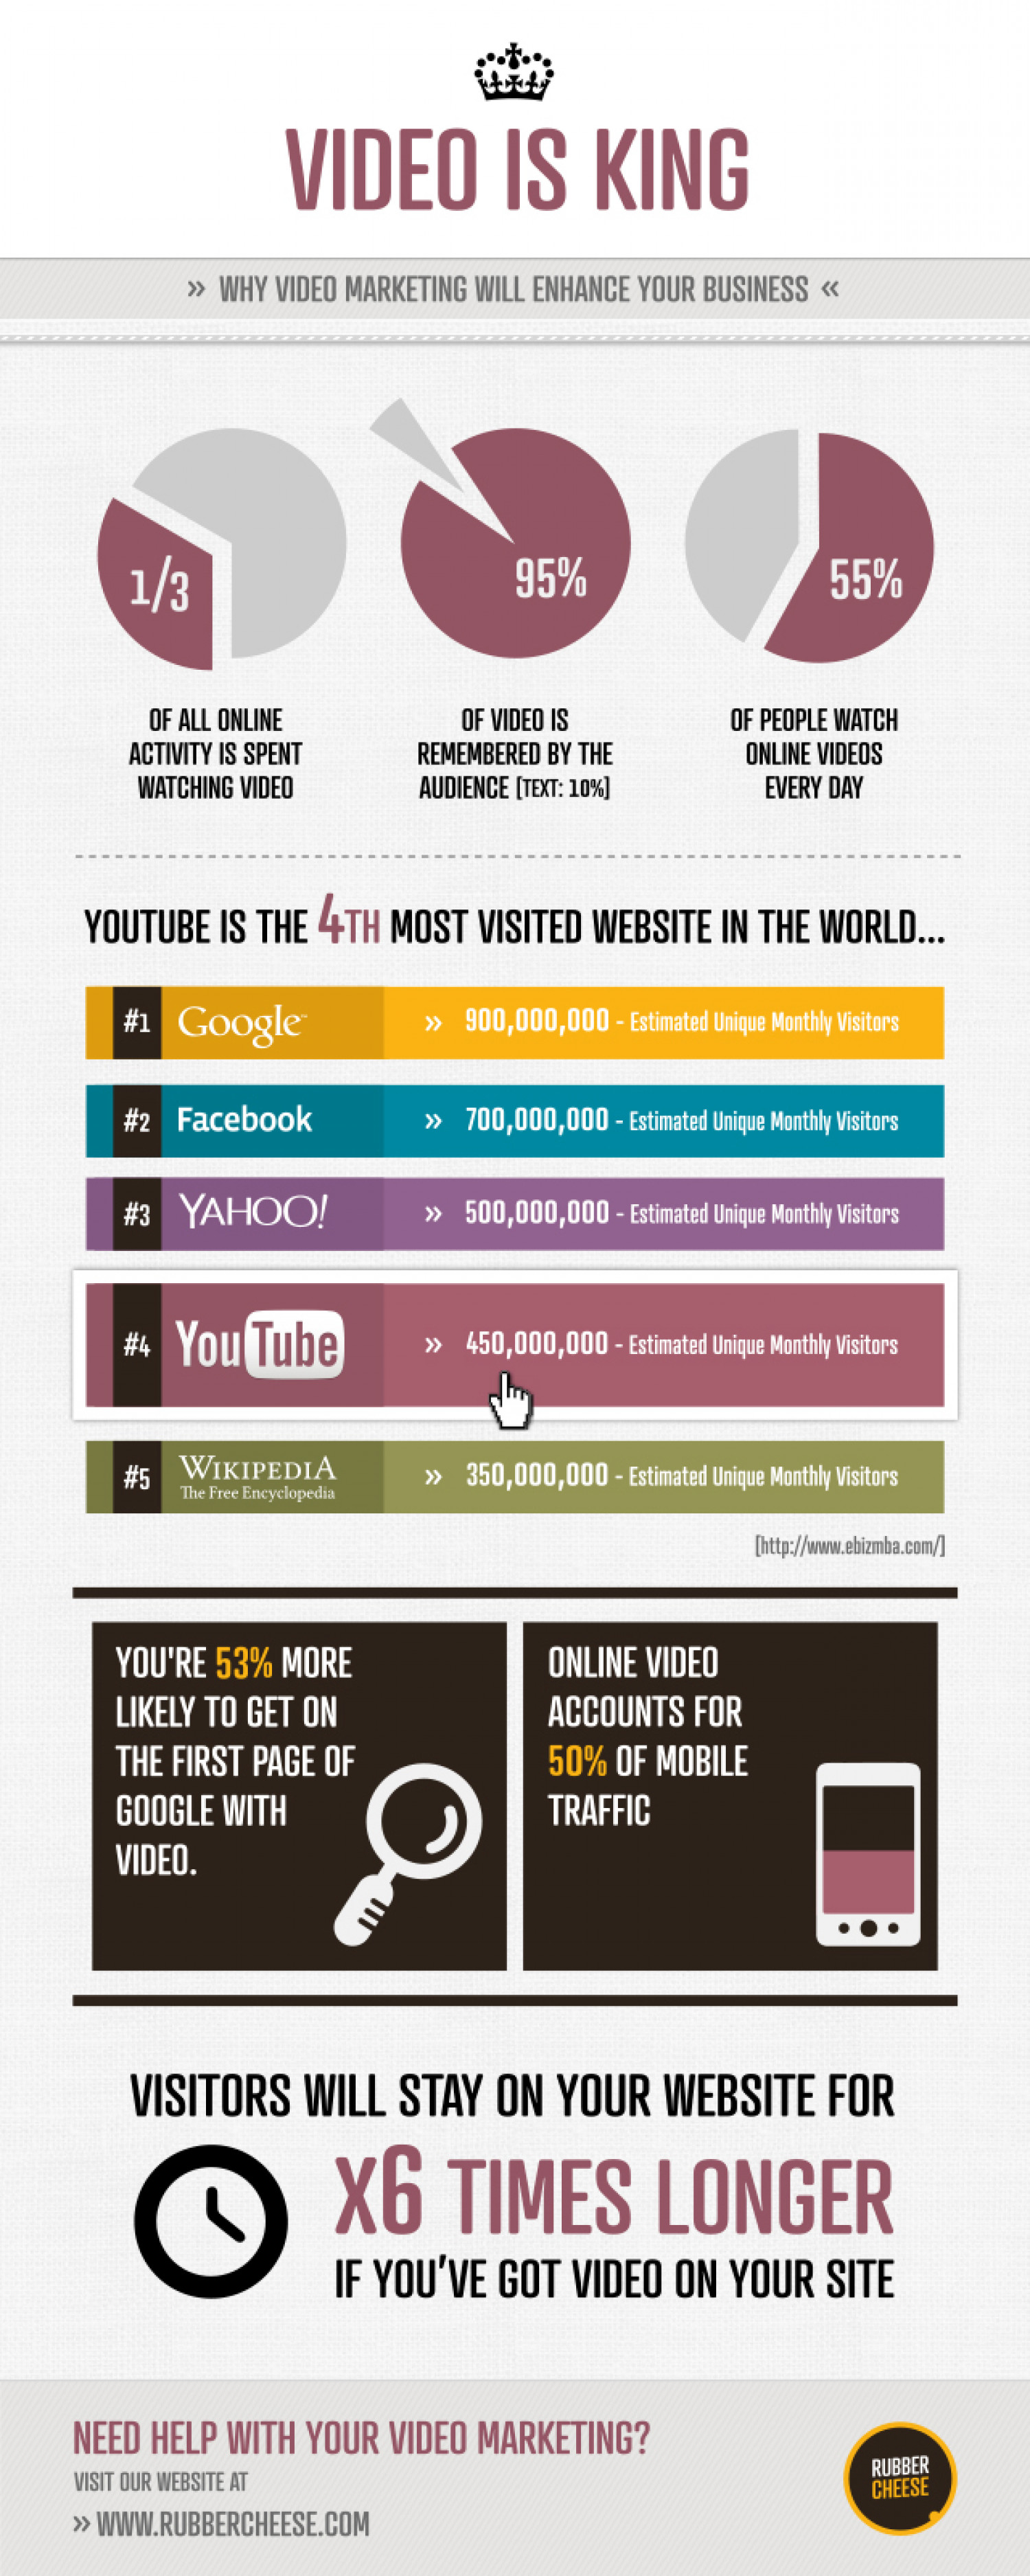 'Video is King' Infographic